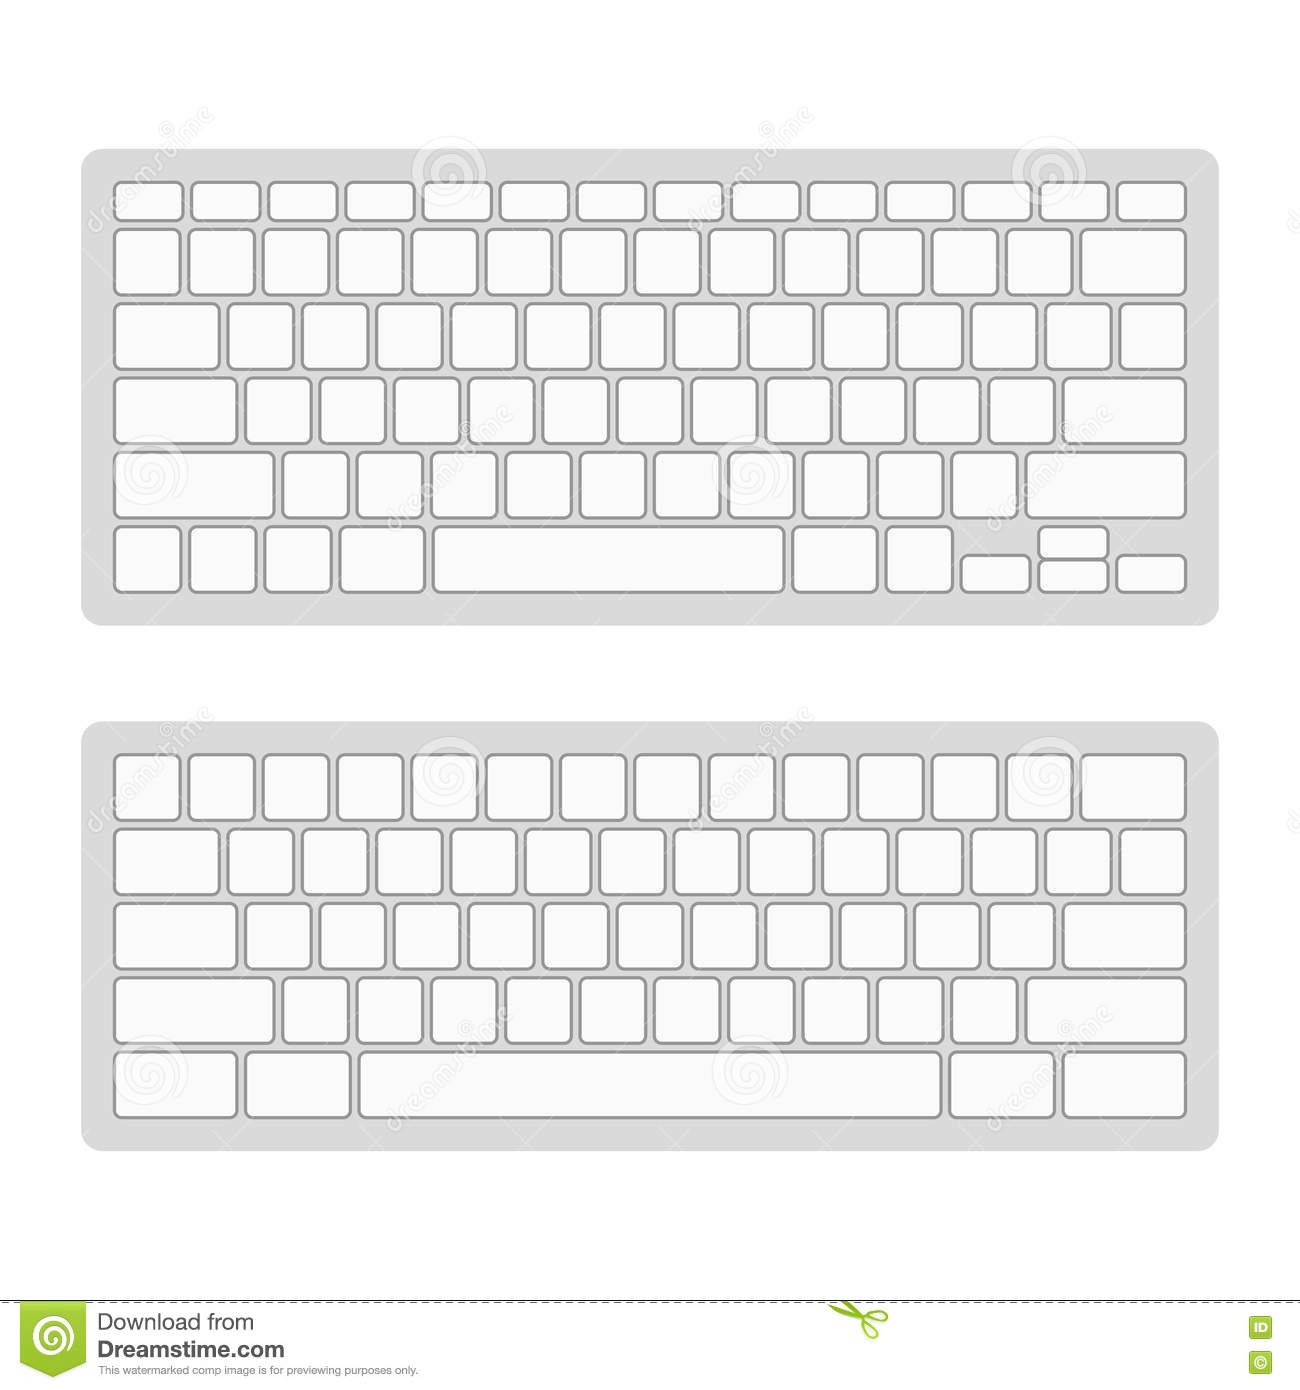 Worksheets Blank Computer Keyboard Worksheet computer keyboard blank template set vector stock image illustration keyboard